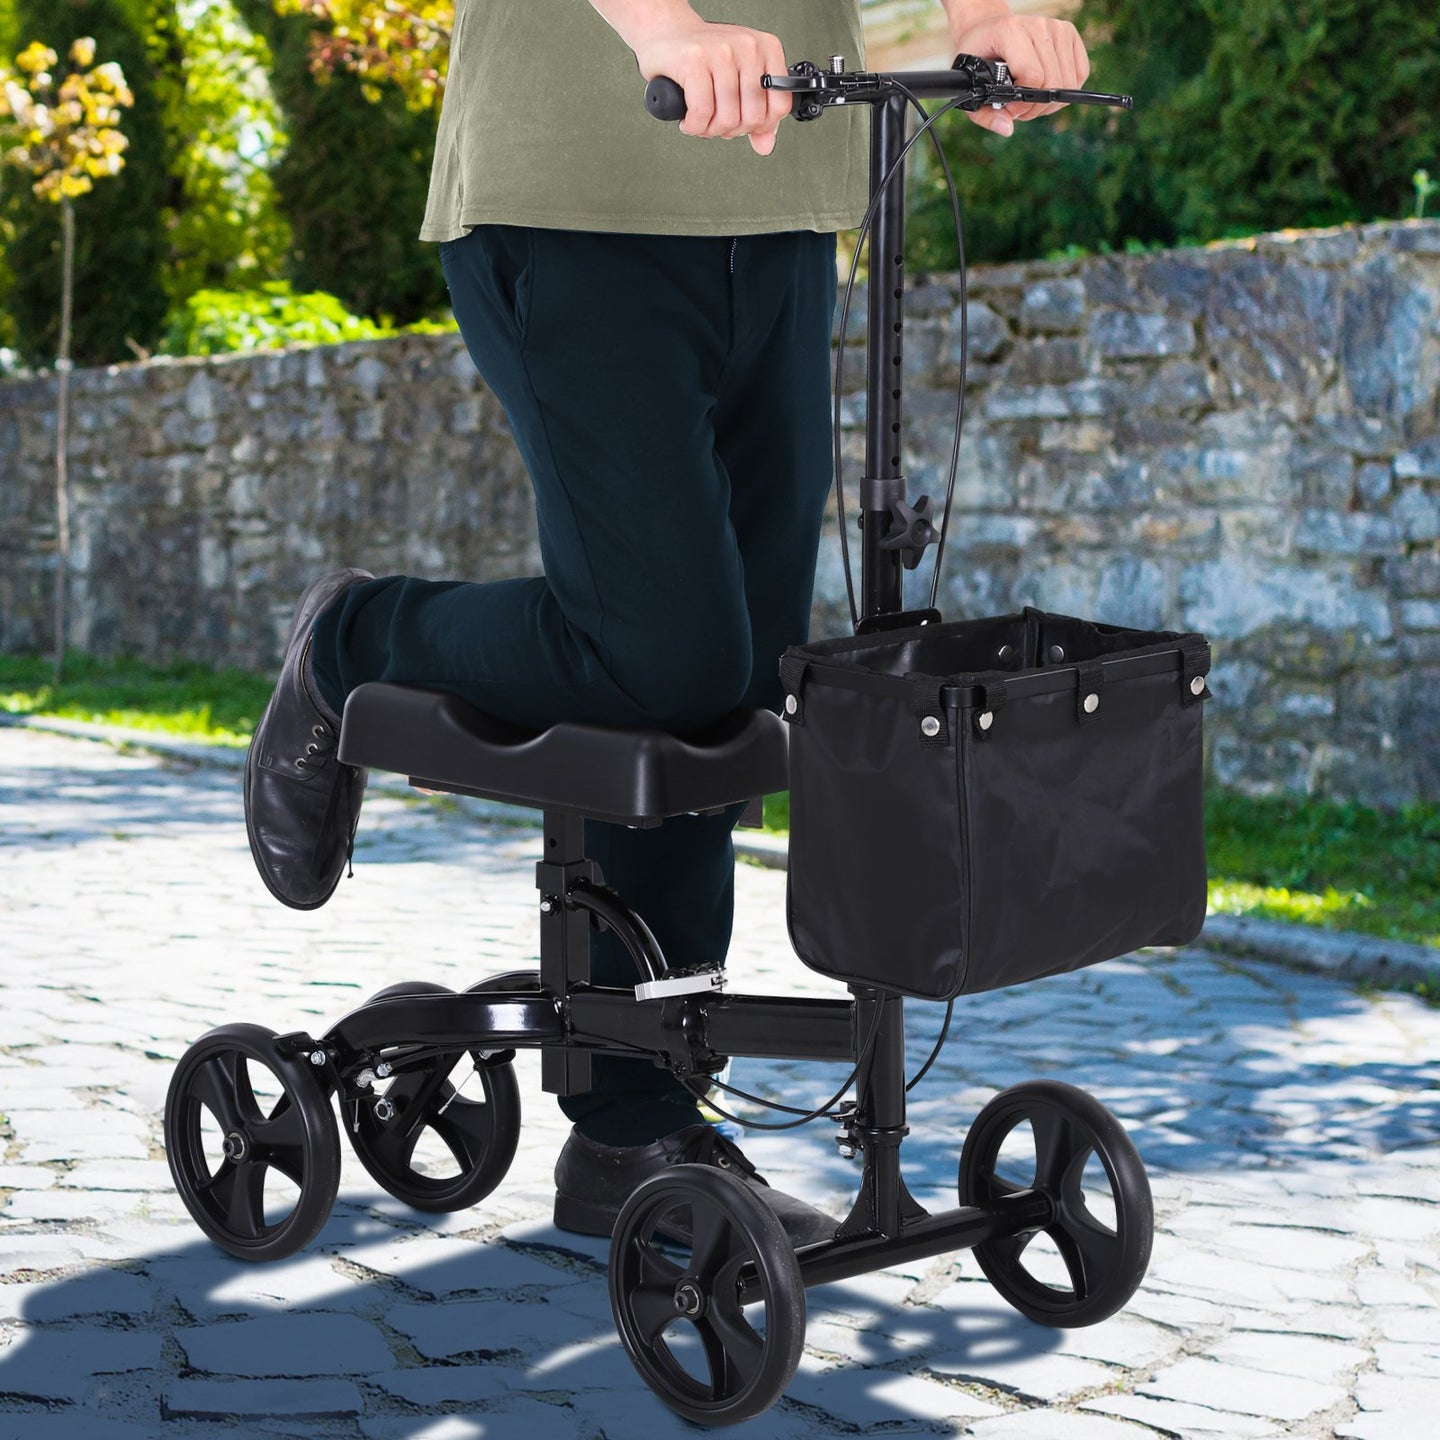 HOMCOM Metal Foldable Medical Knee Rest Walker Scooter w/ Storage Basket Black